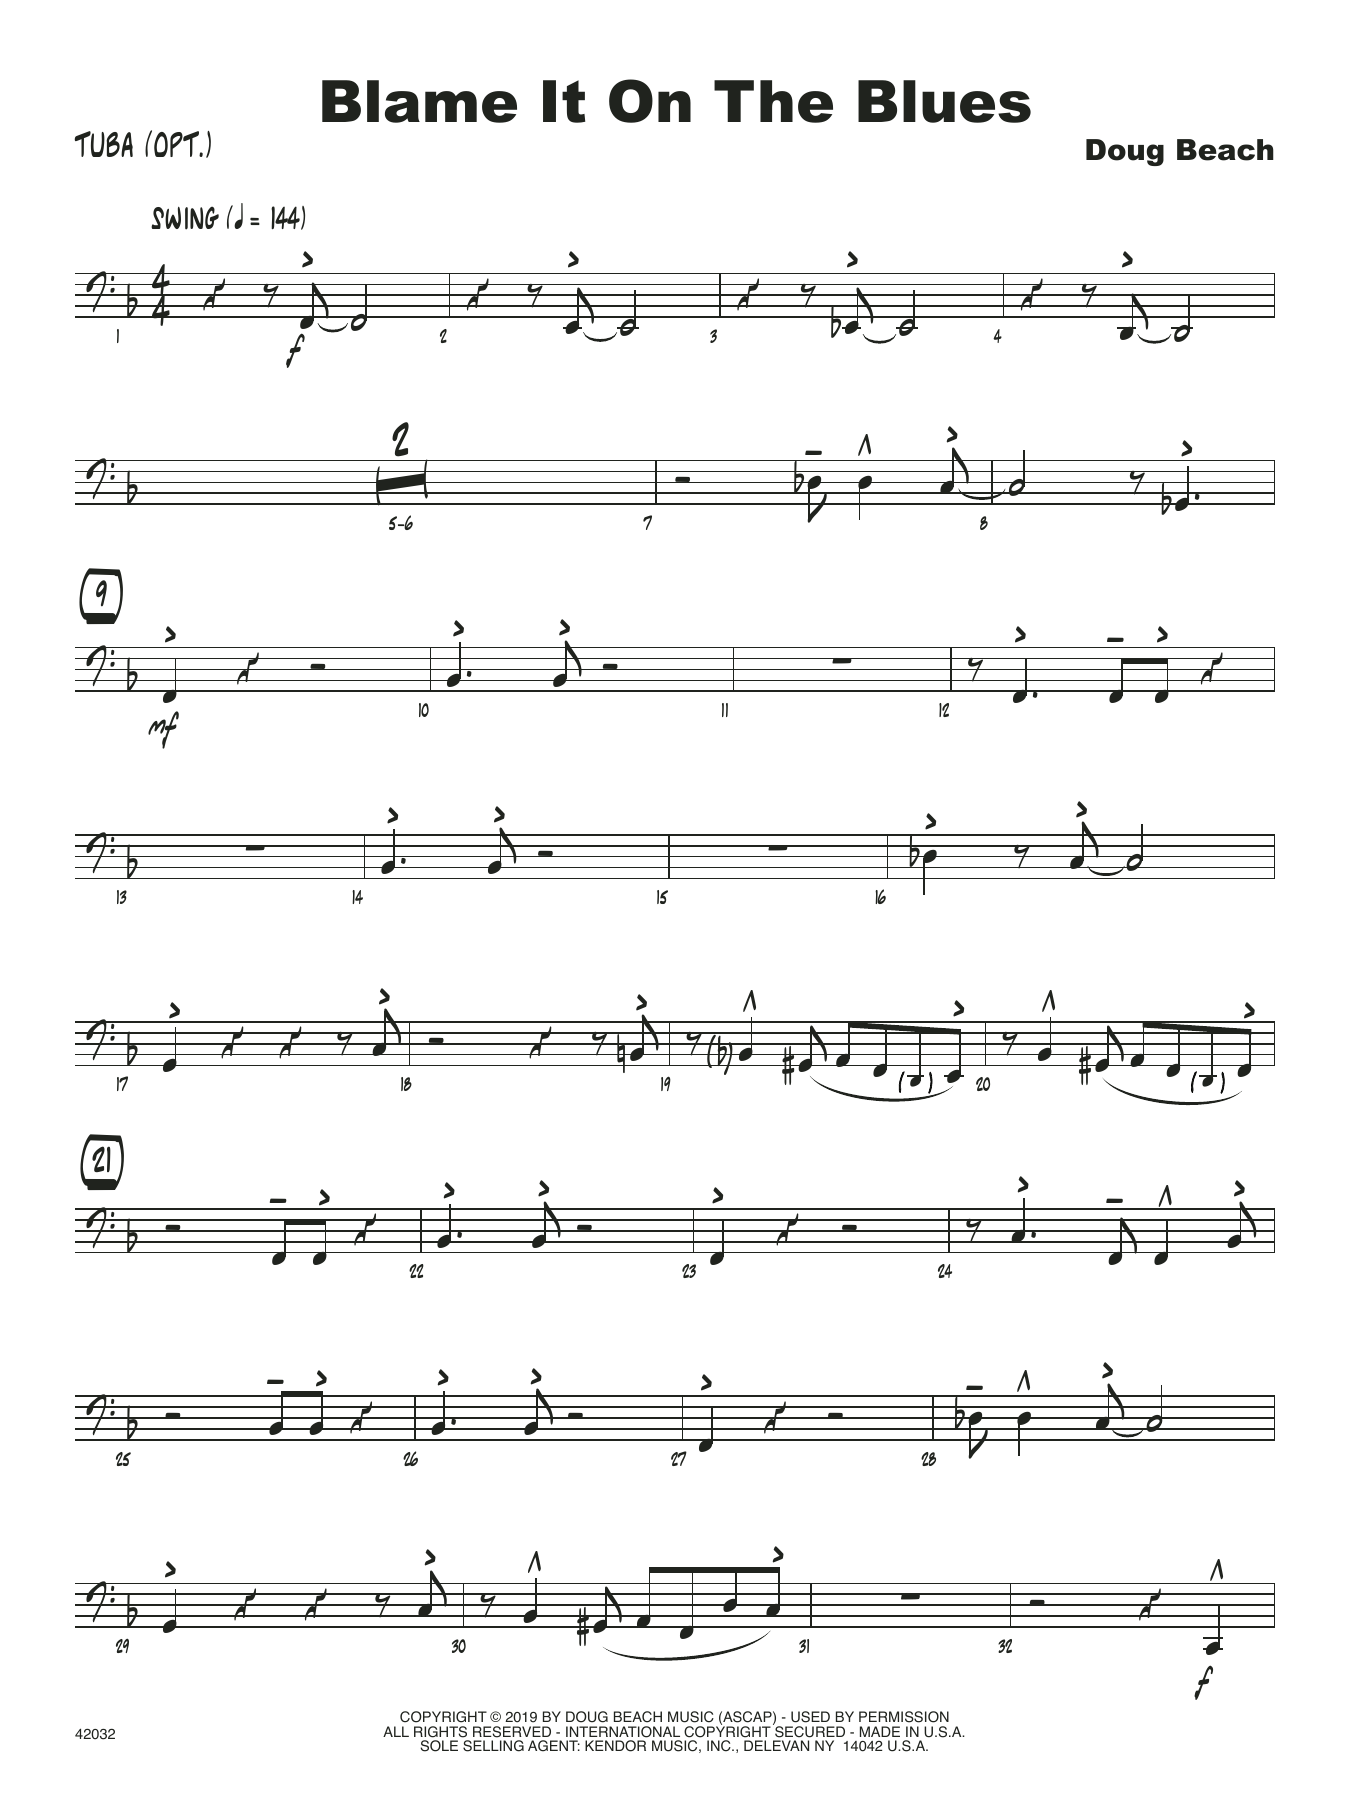 Doug Beach Blame It On The Blues - Tuba sheet music notes and chords. Download Printable PDF.